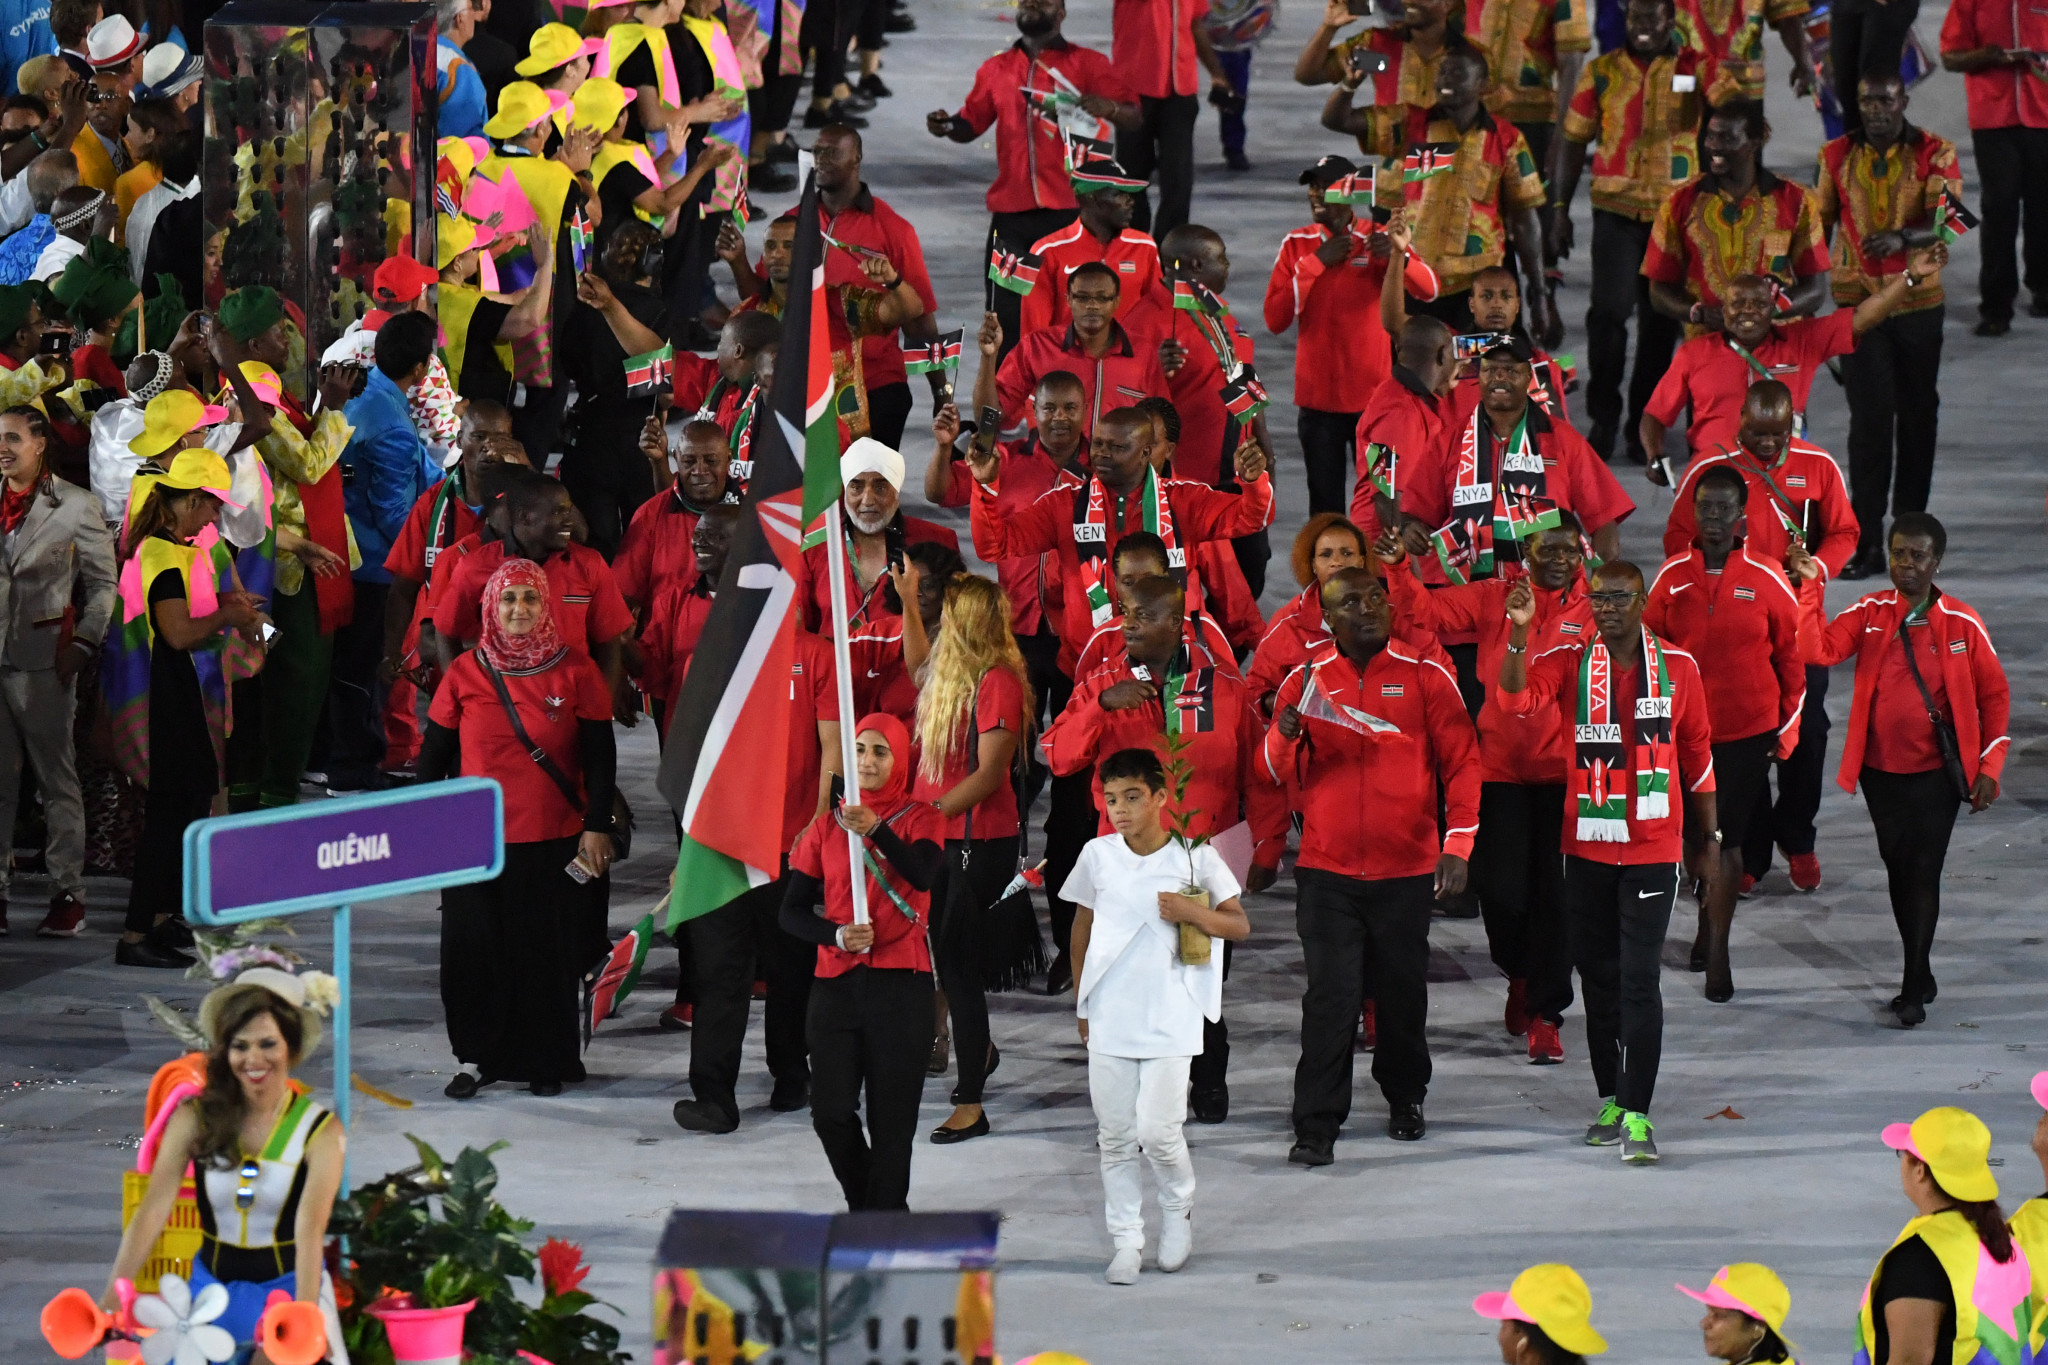 Kenya NOC wants country's Olympic team to continue training in COVID-19 bubble